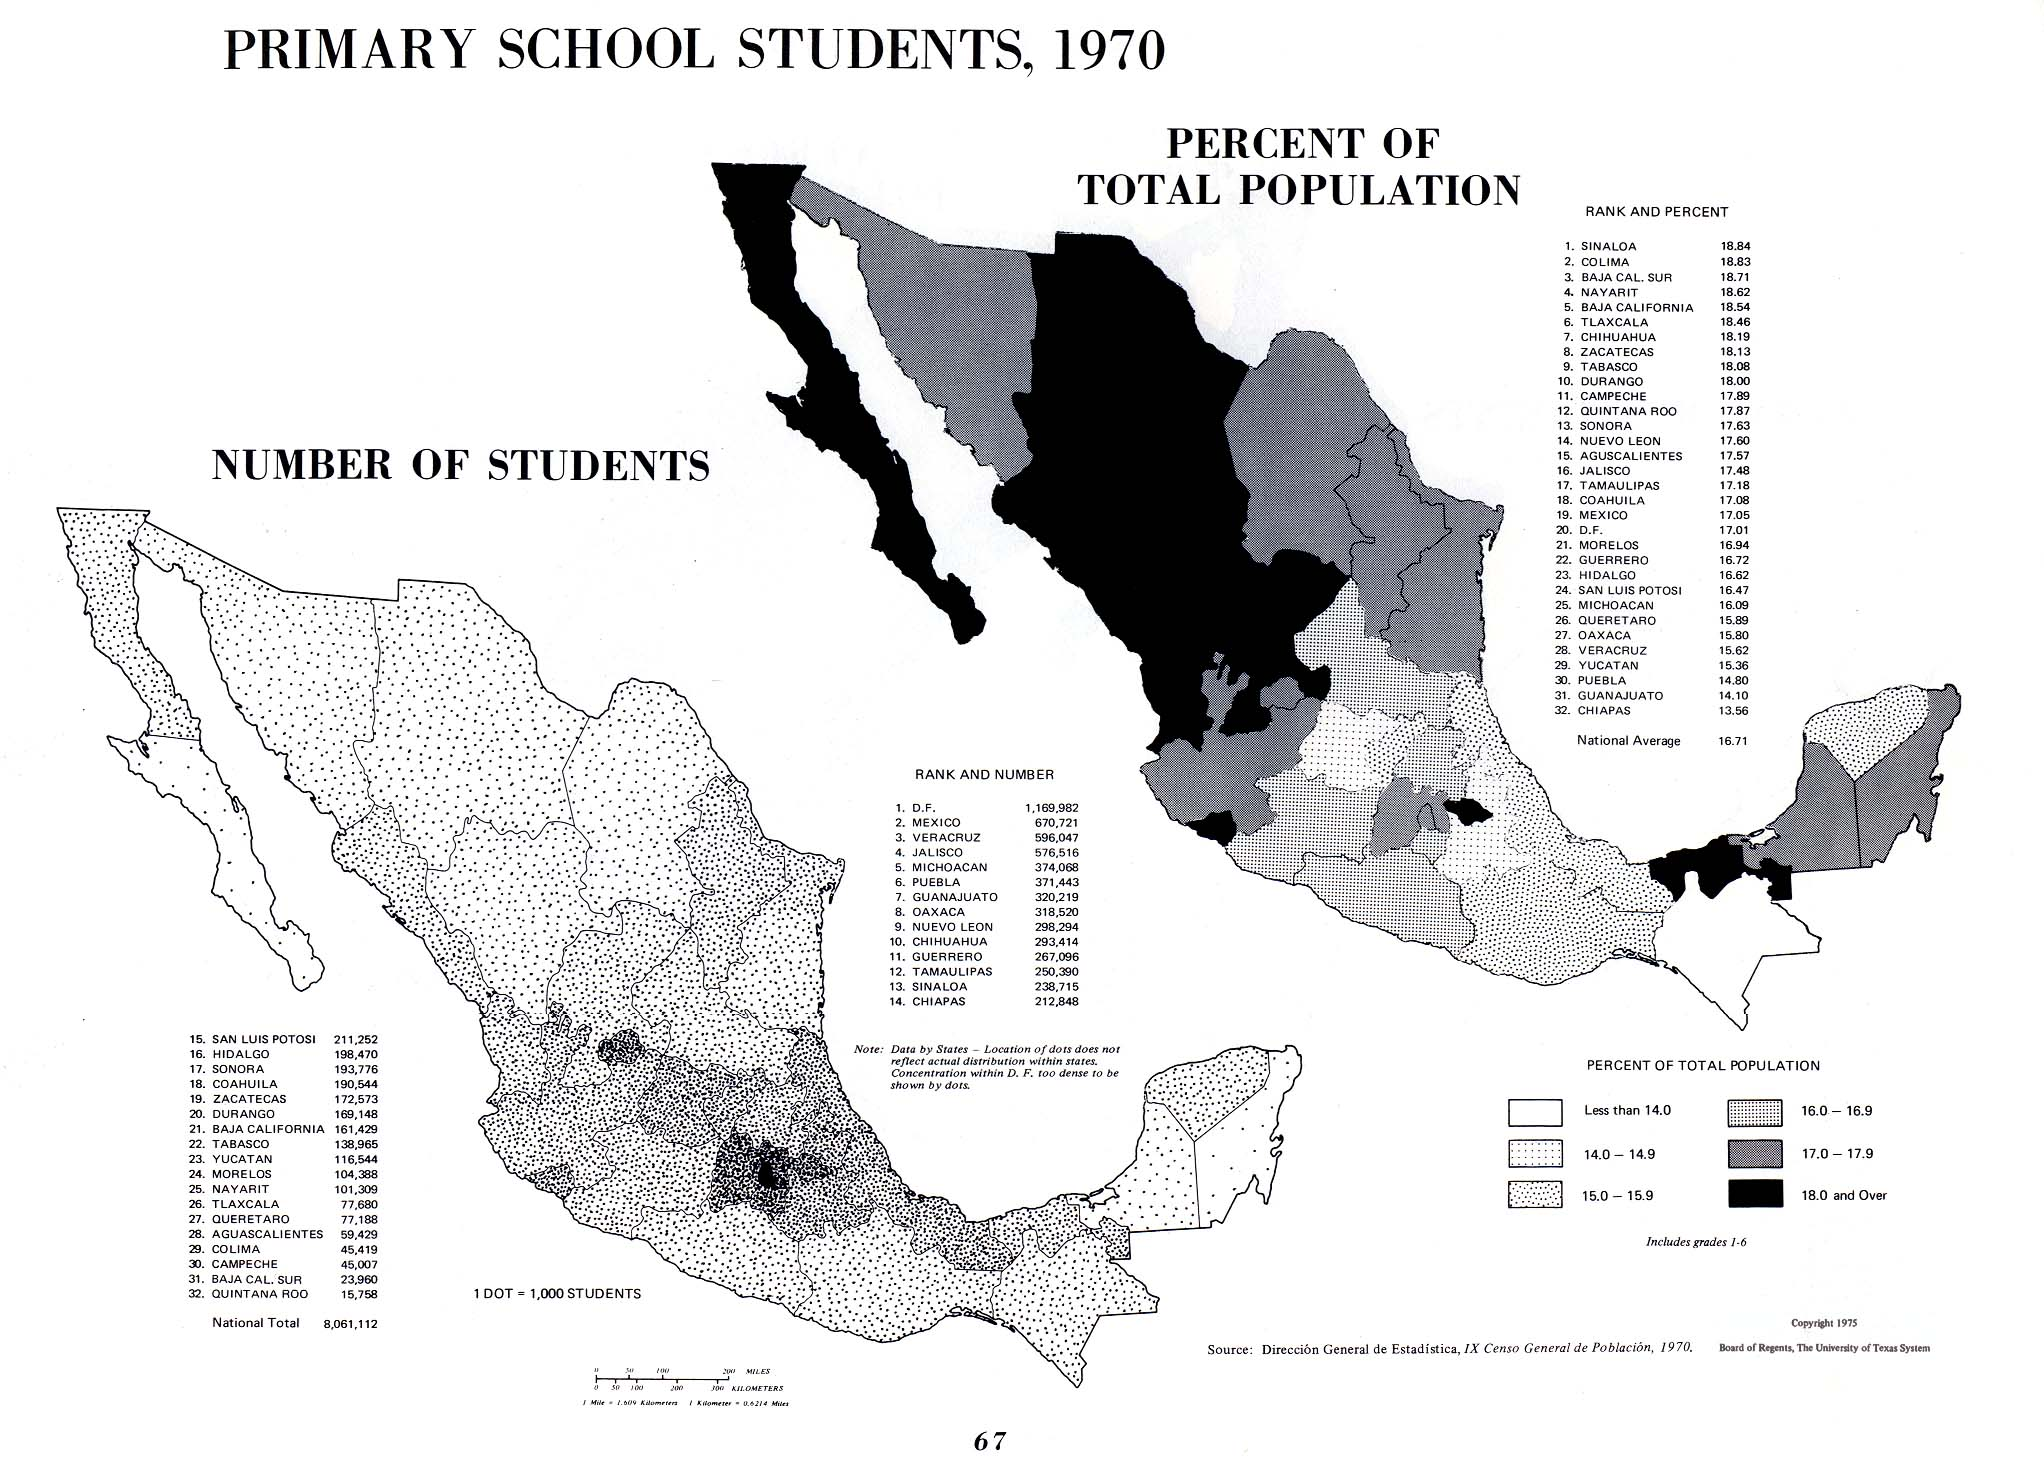 Primary School Students in Mexico 1970